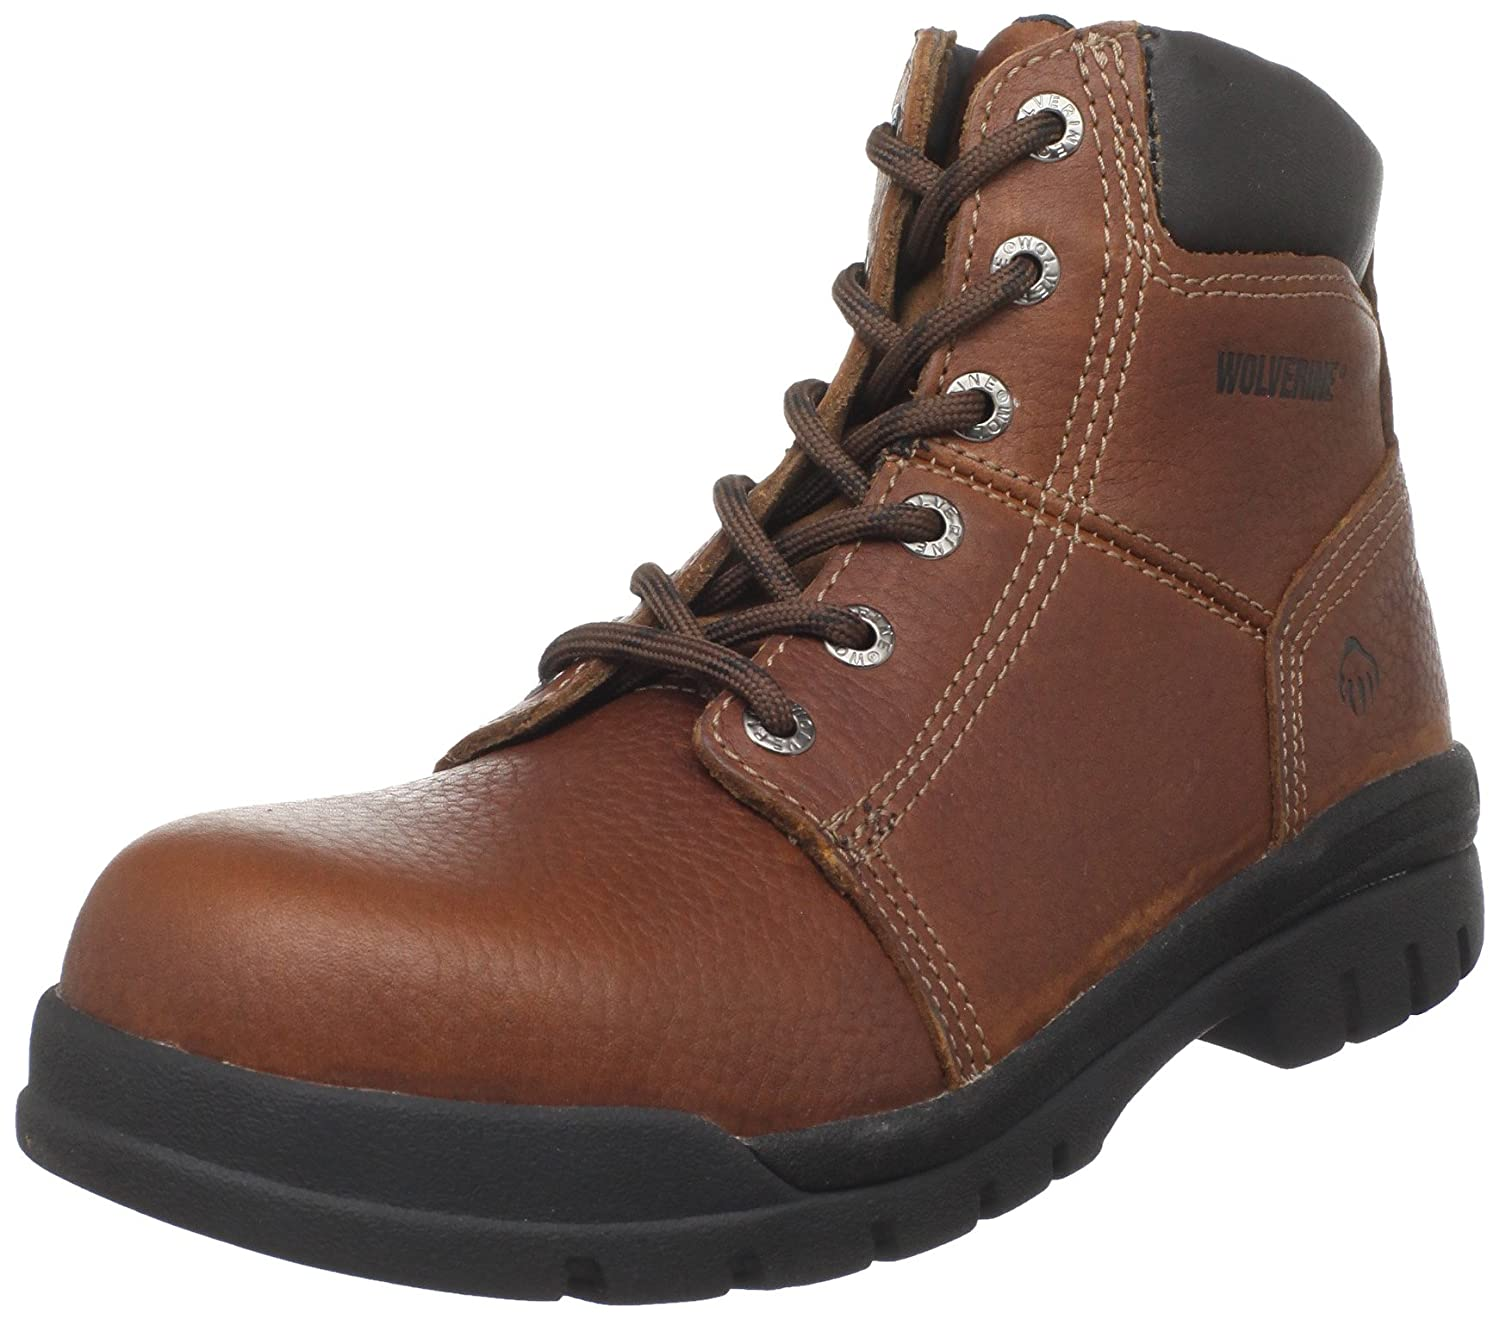 5b32a916cf6 Wolverine Men's Marquette W04713 Steel Toe Steel Toe Work Boot